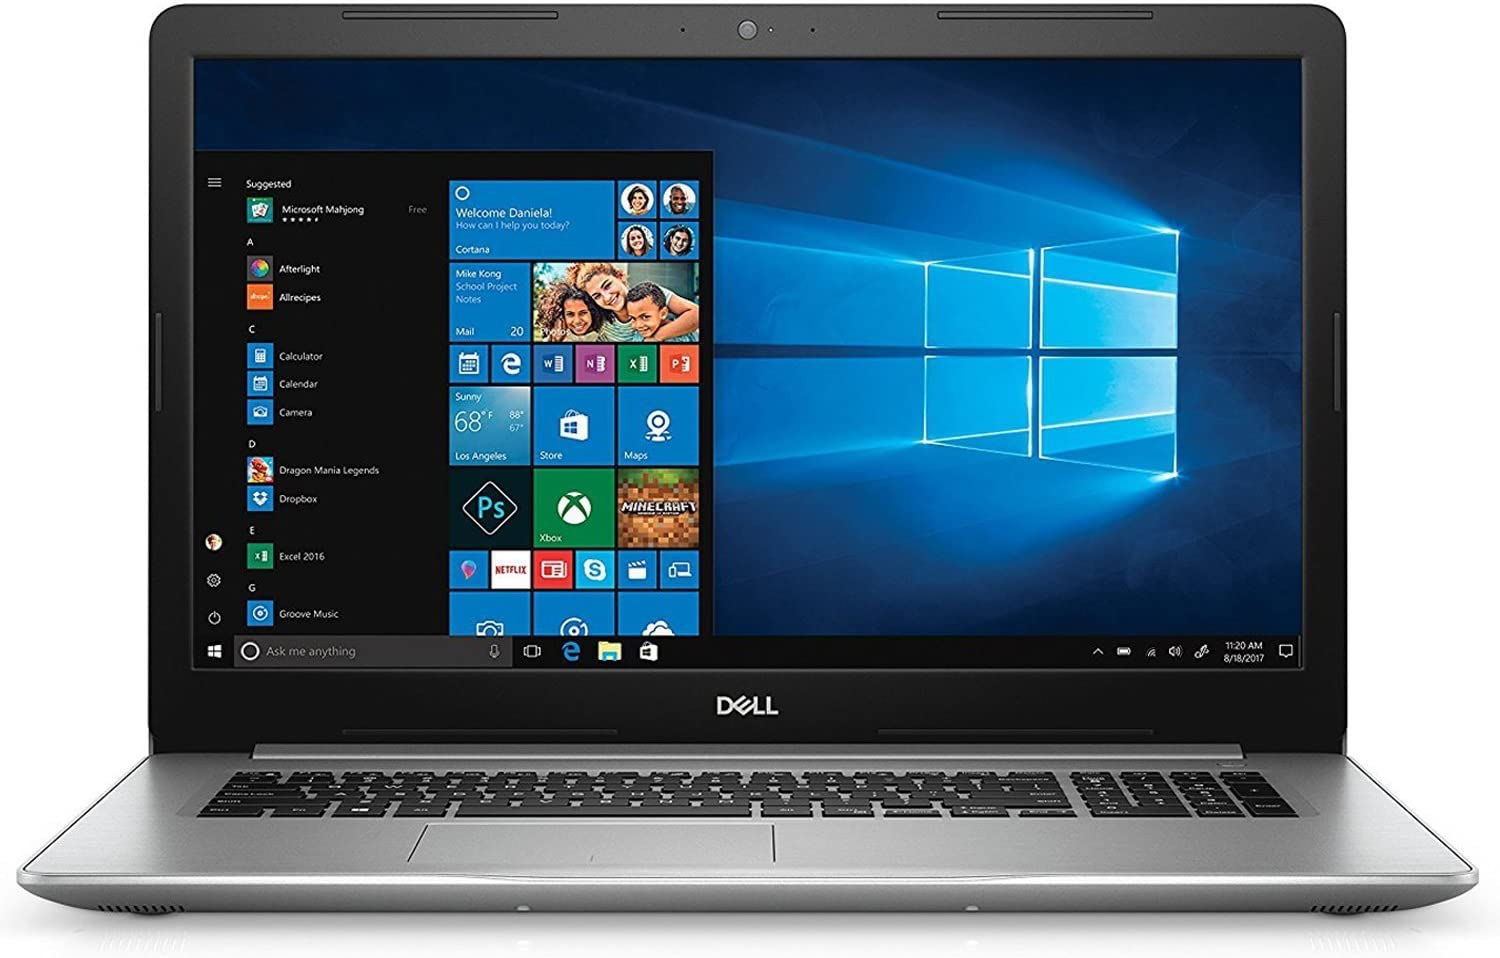 "2019 Dell 17.3"" Inspiron 17 5000 Laptop Computer, Intel Core i7-8550U Up to 1.8GHz, 16GB DDR4 RAM, 512GB SSD + 2TB HDD, 802.11AC WiFi, Bluetooth 4.1, USB 3.1, HDMI, DVD-RW, Windows 10 Professional"